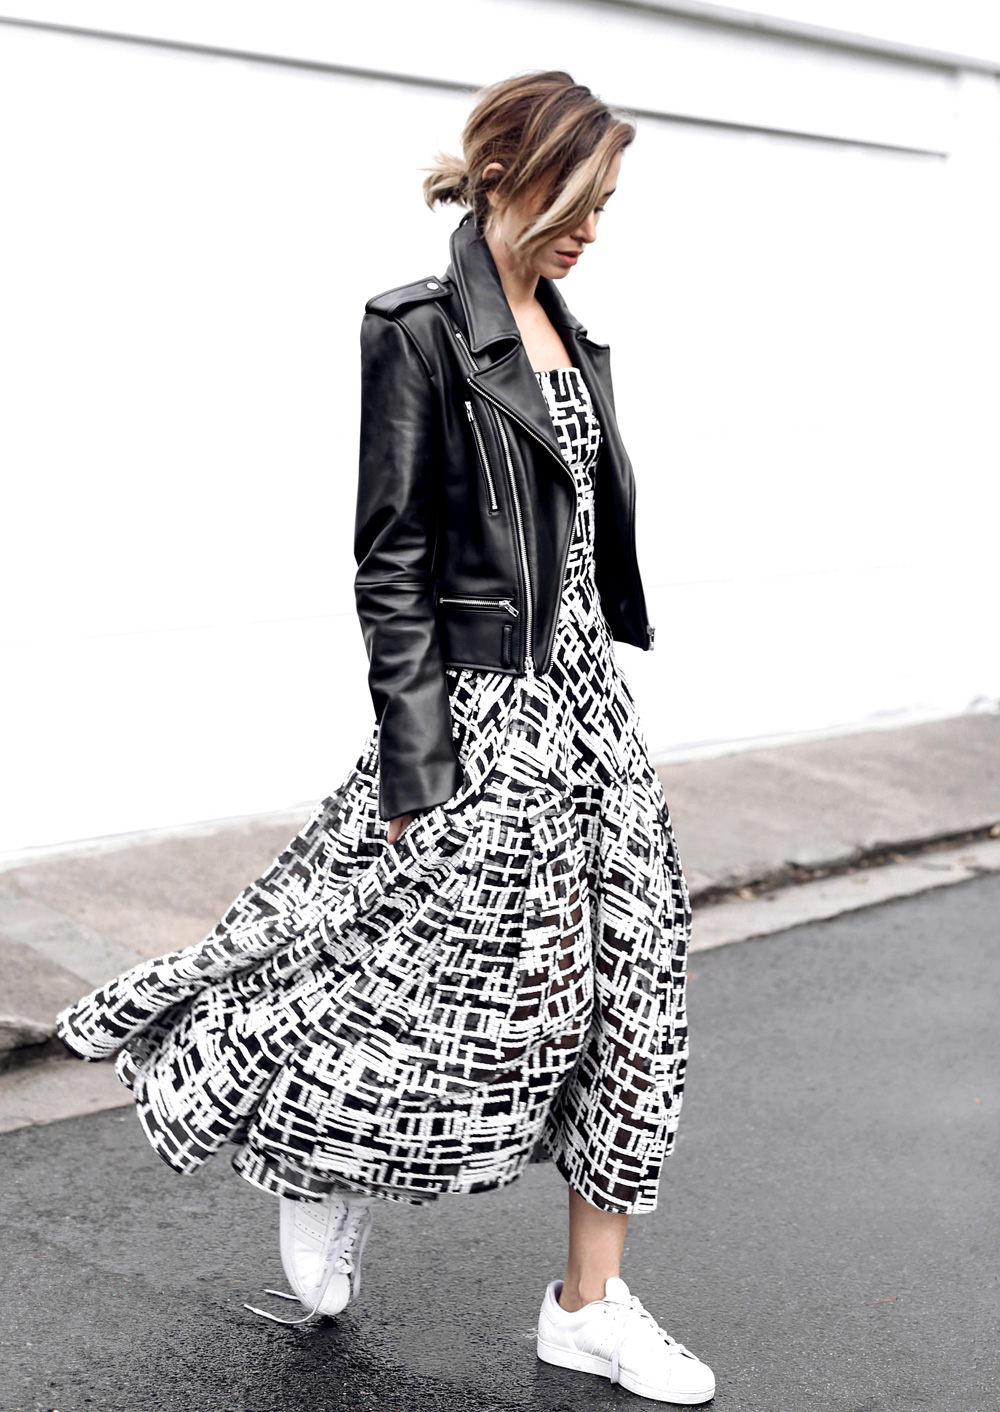 Black and white maxi dress, black leather jacket and pure white sneakers. Via Carmen Hamilton Jacket: Dion Lee, Dress: Toni Maticevski, Sneakers: Adidas